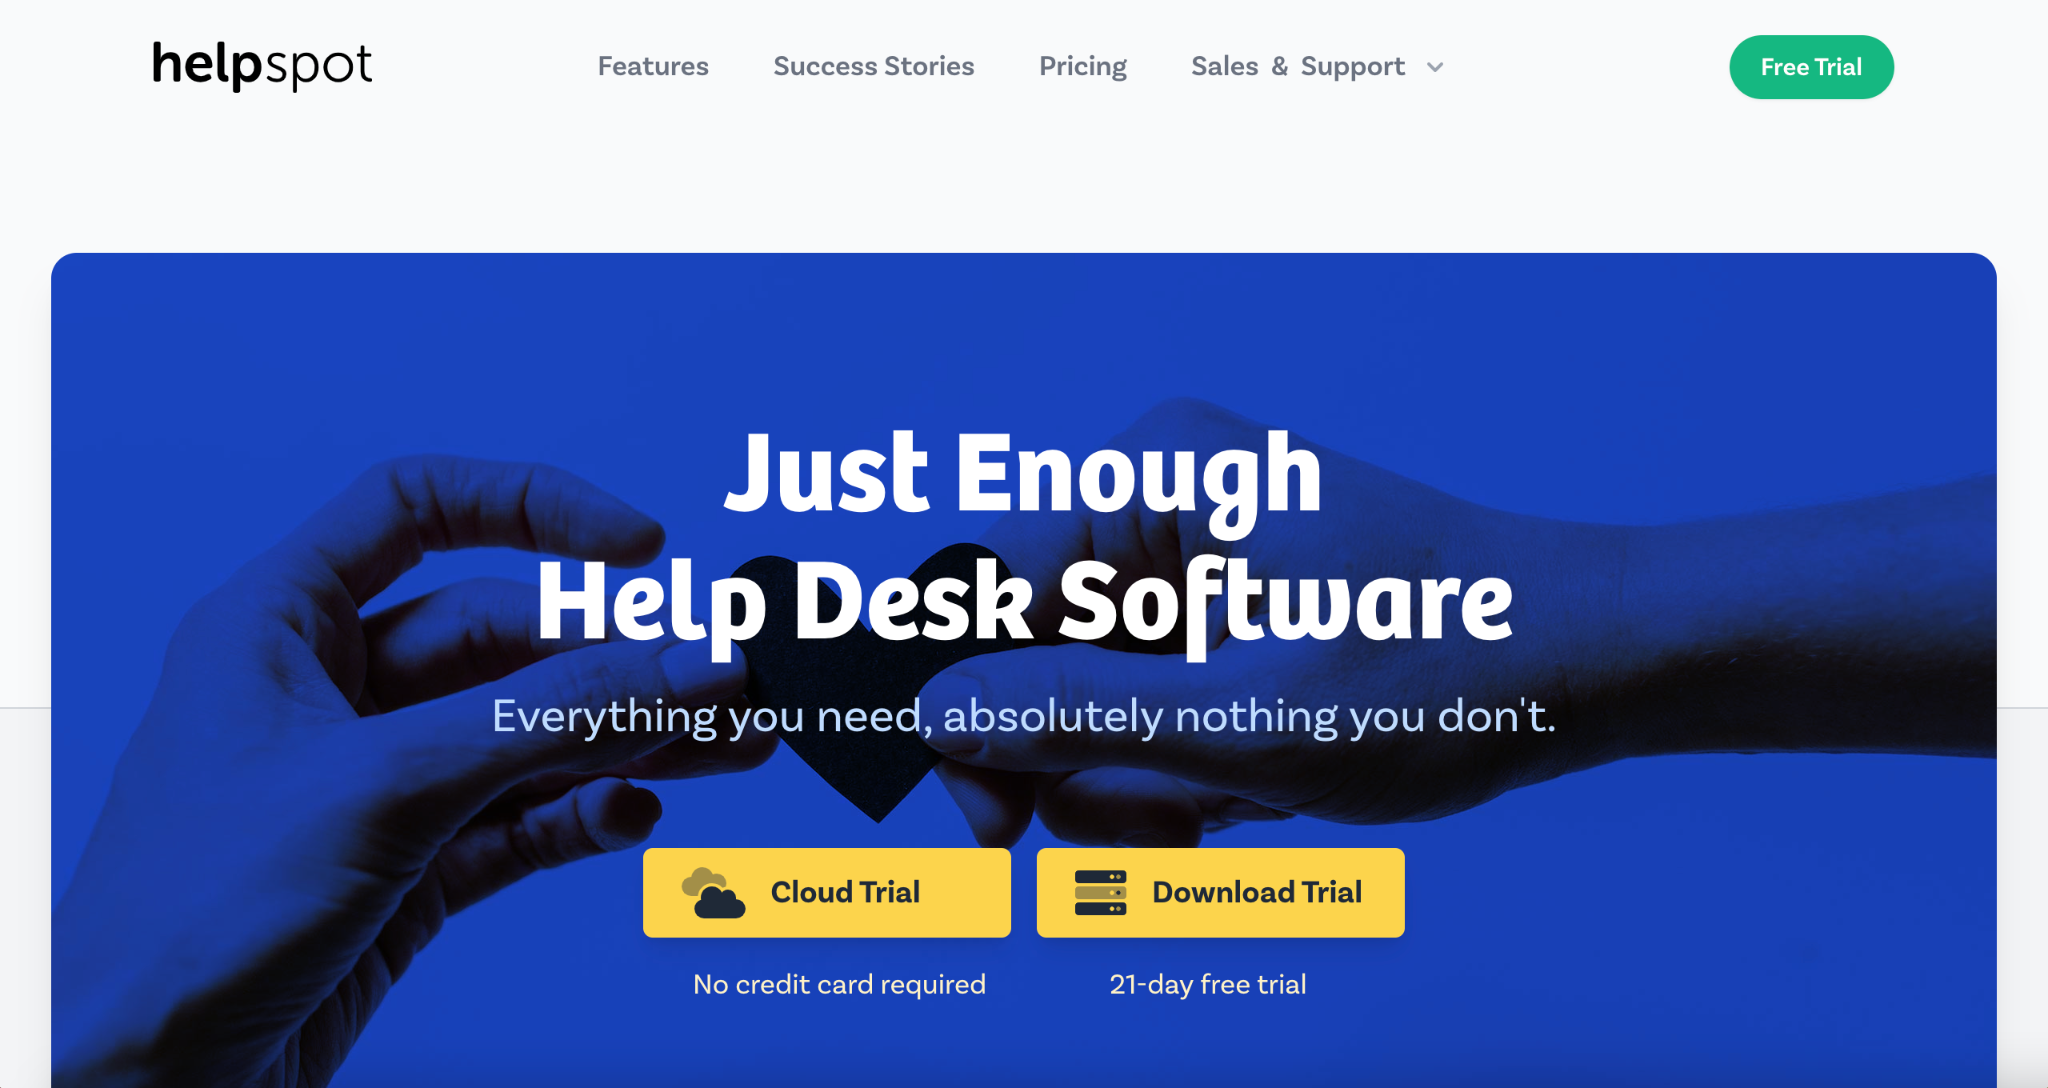 HelpSpot homepage: The Just Enough Help Desk